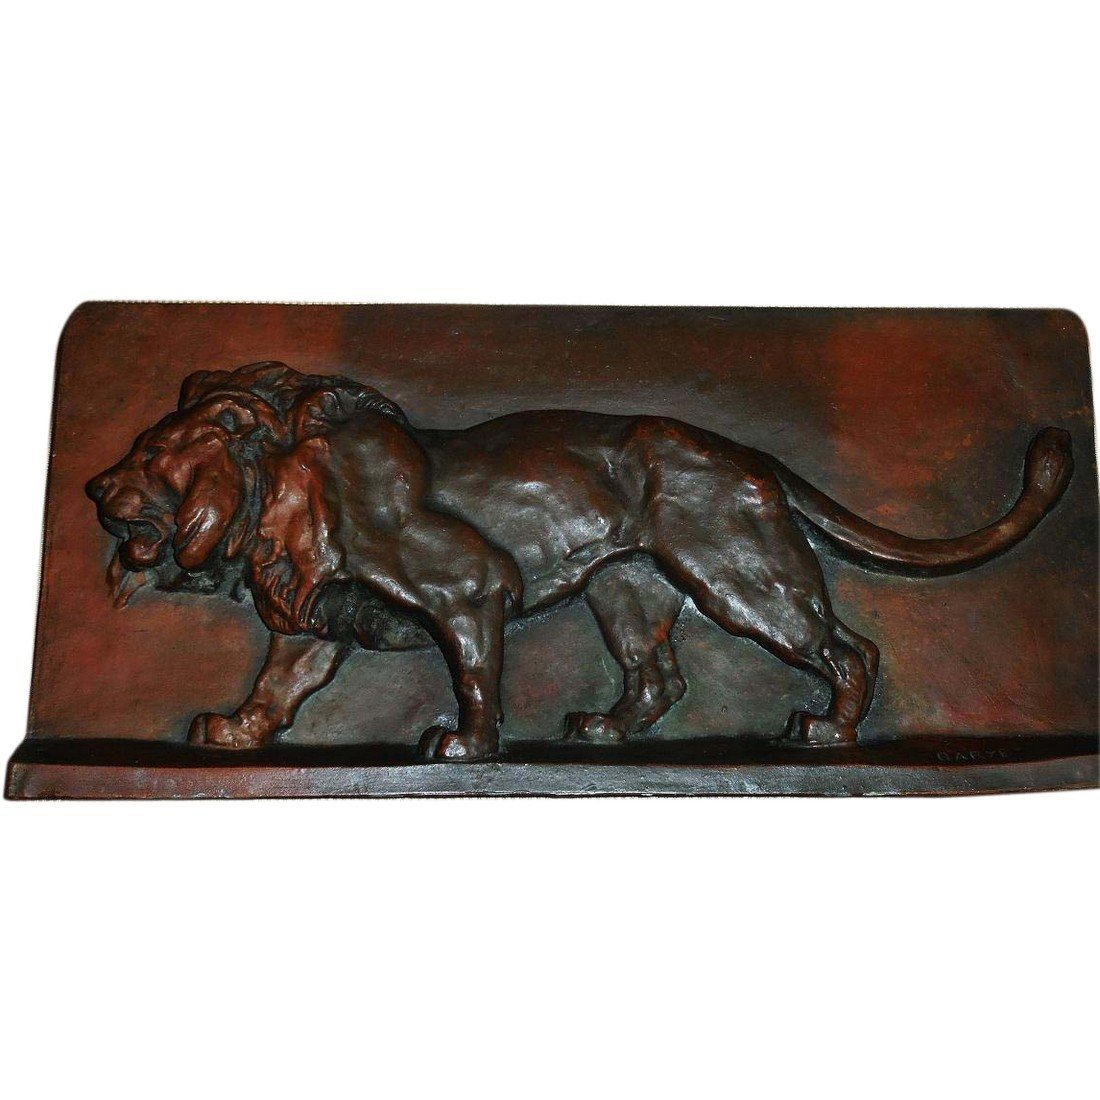 Big Antique French Bronze Lion Plaque by Barye